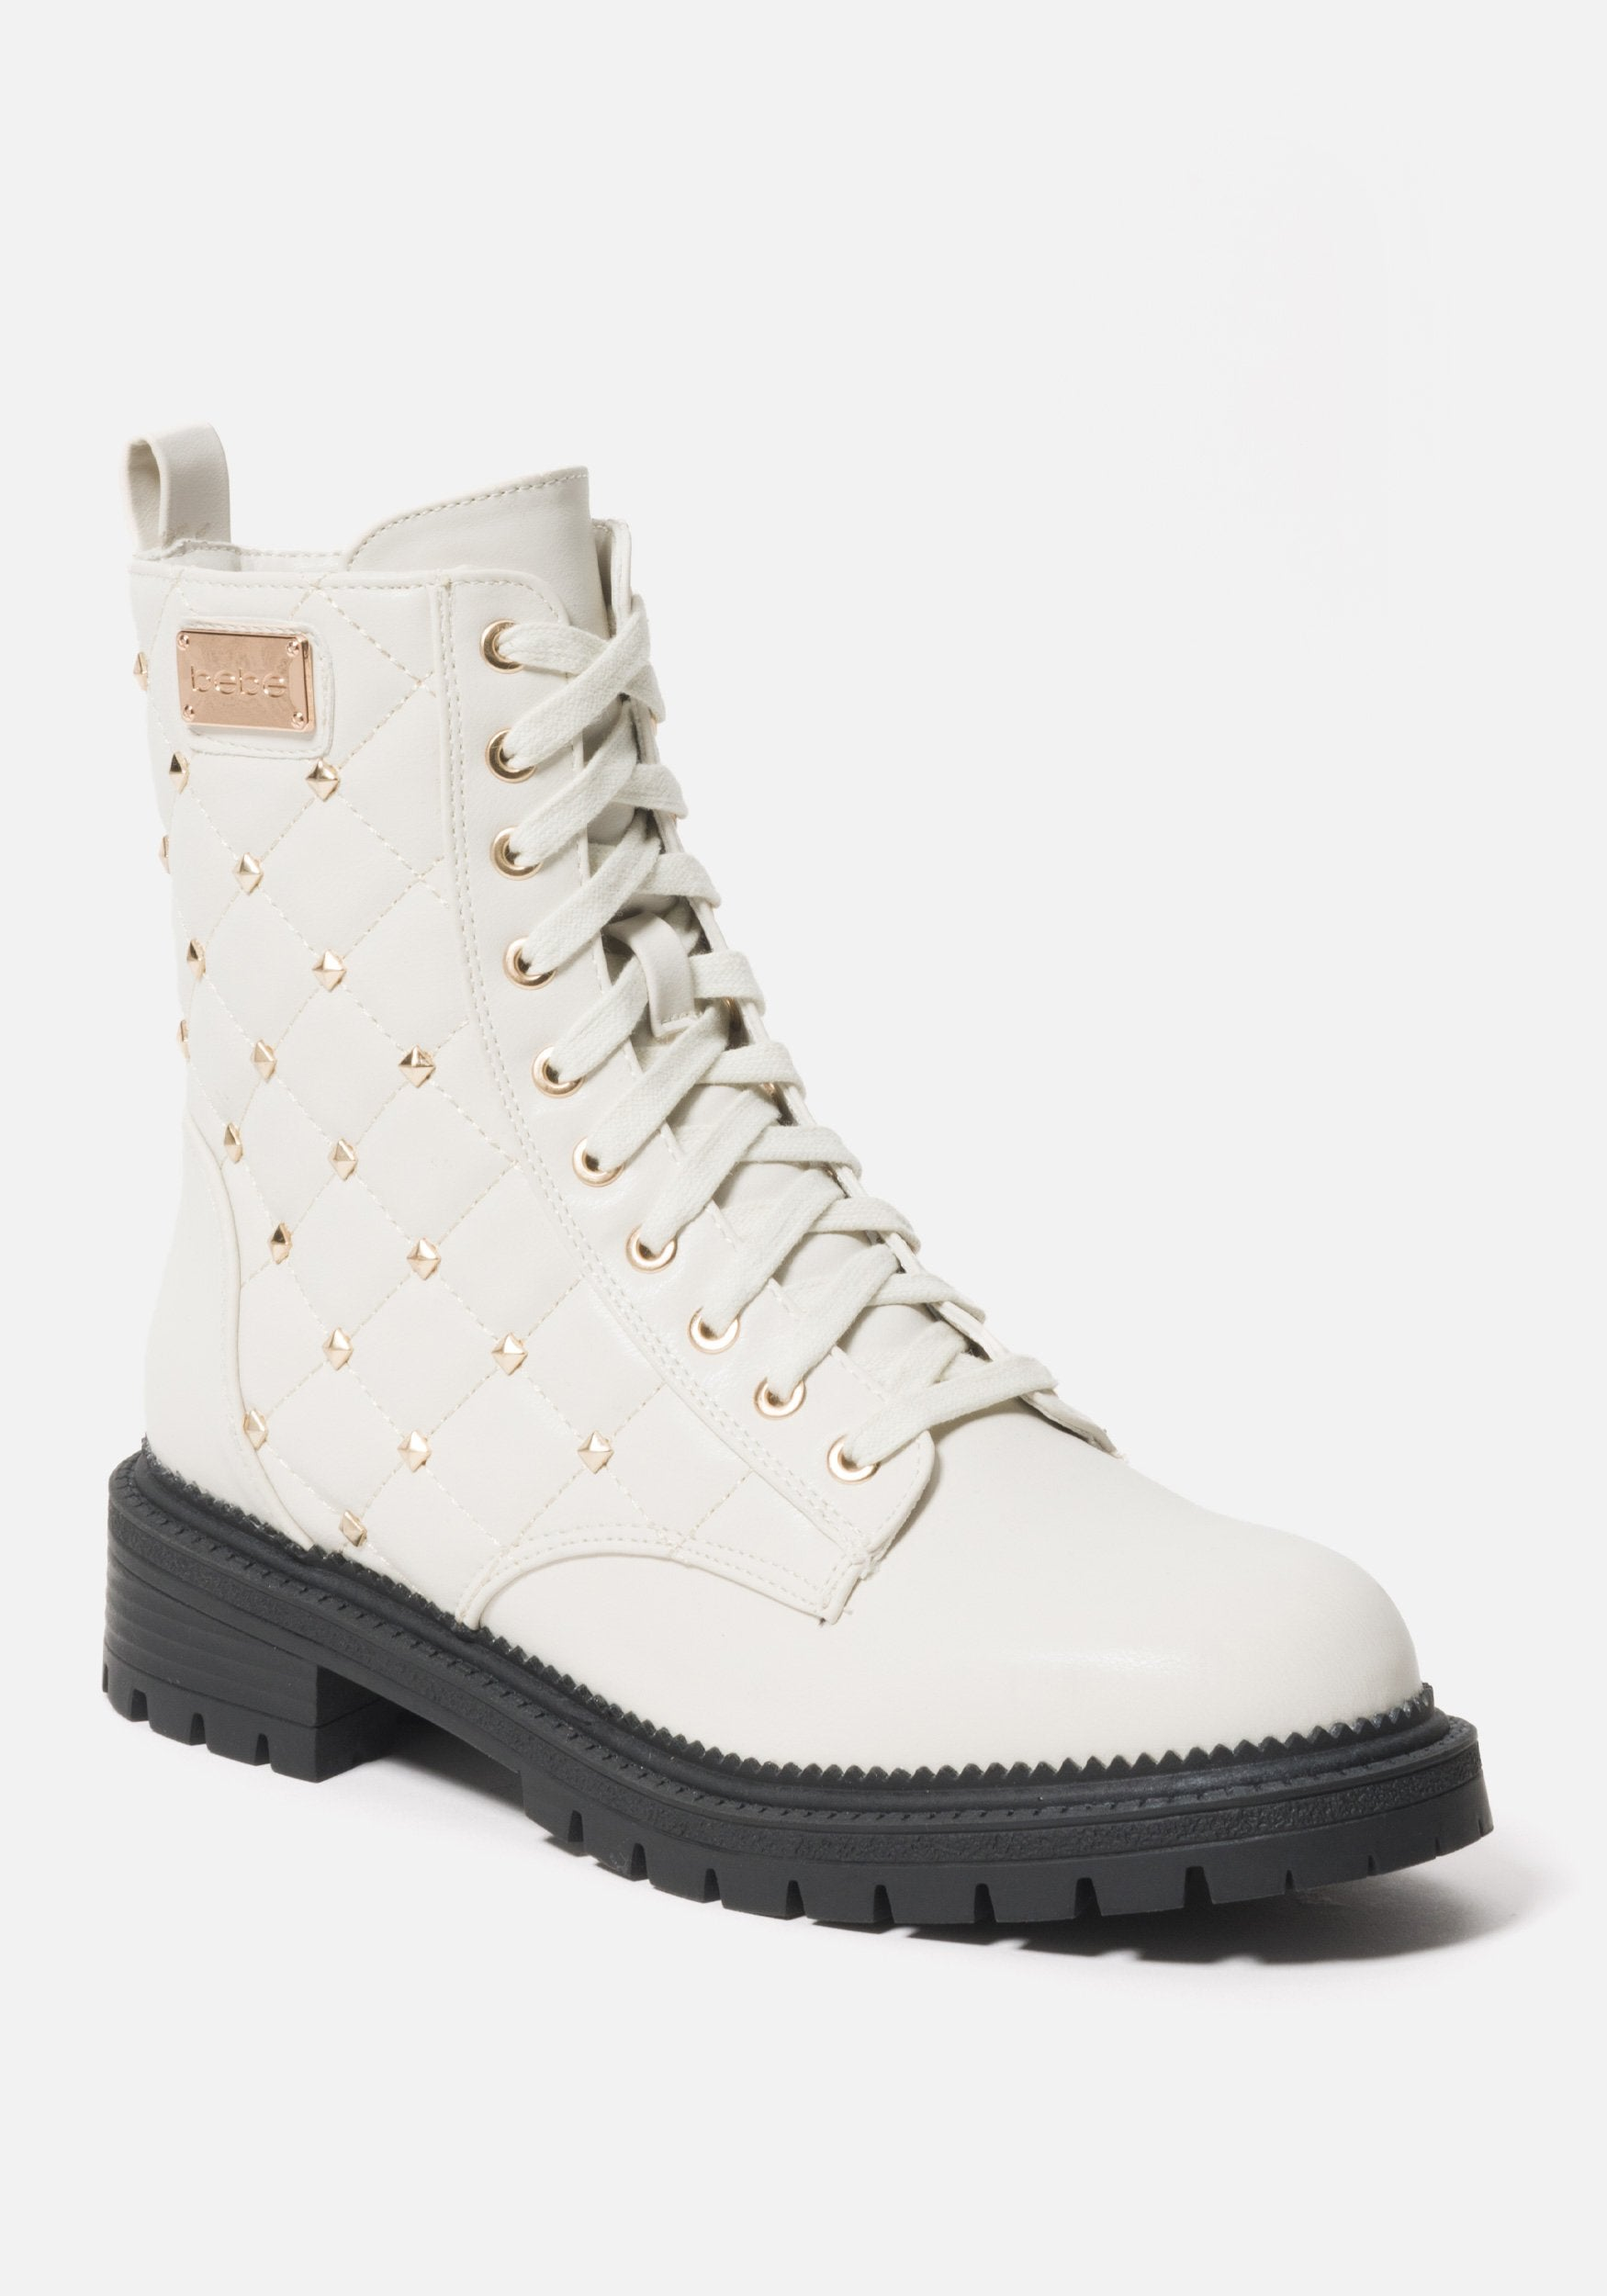 Bebe Women's Dorienne B Quilted Combat Boots, Size 6 in WHITE FAUX Synthetic